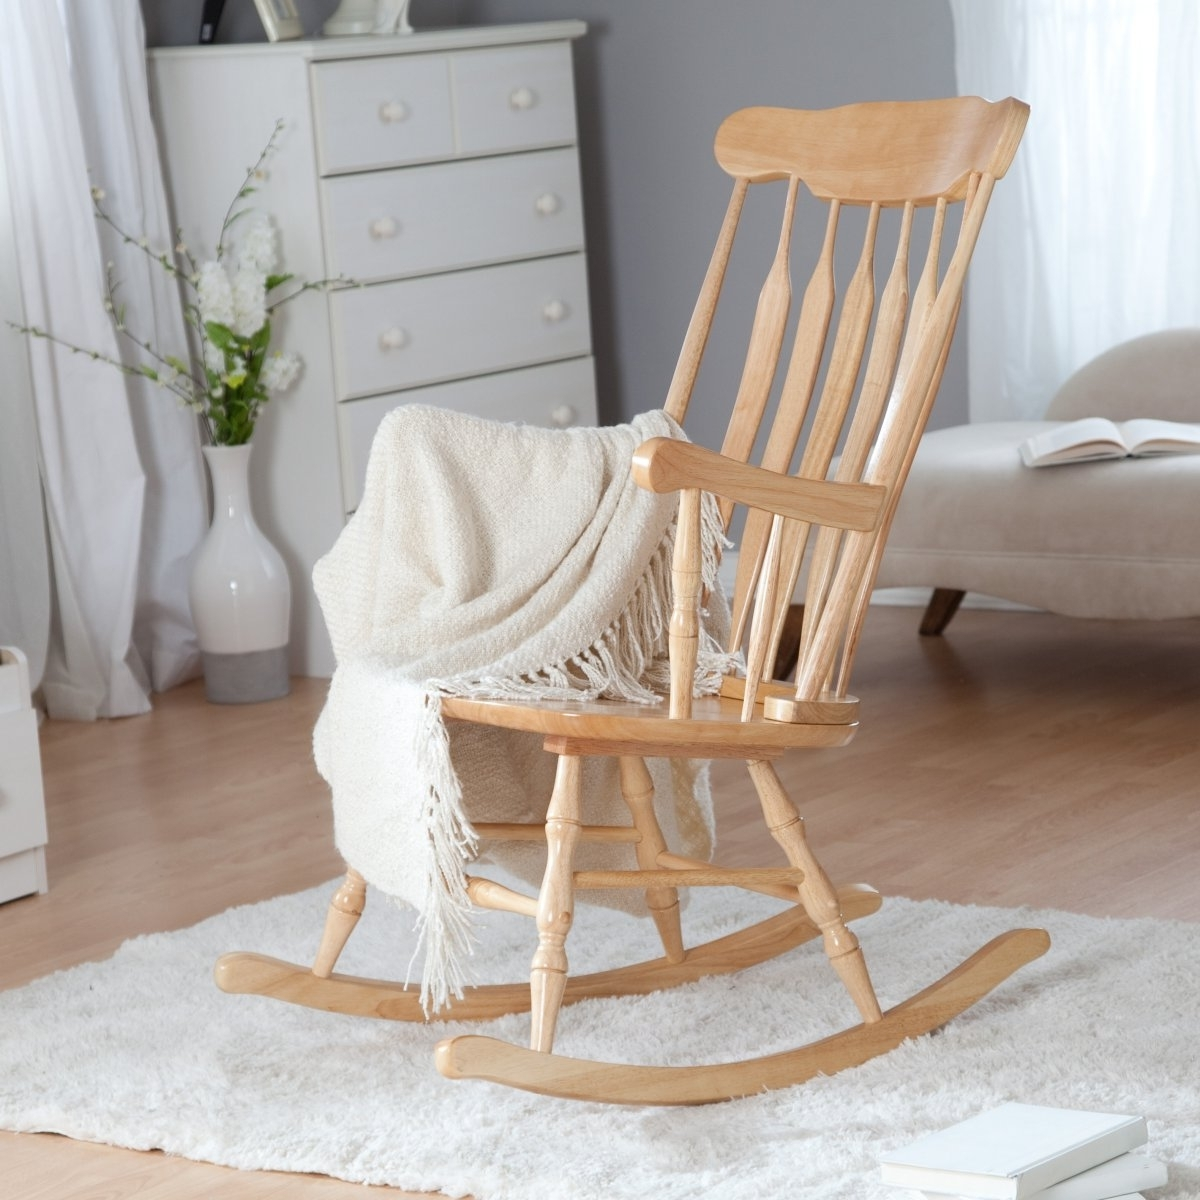 Most Recent Rocking Chairs For Baby Room Inside Living Room Furniture : Rocking Chairs For Baby Nursery Wooden (View 6 of 20)